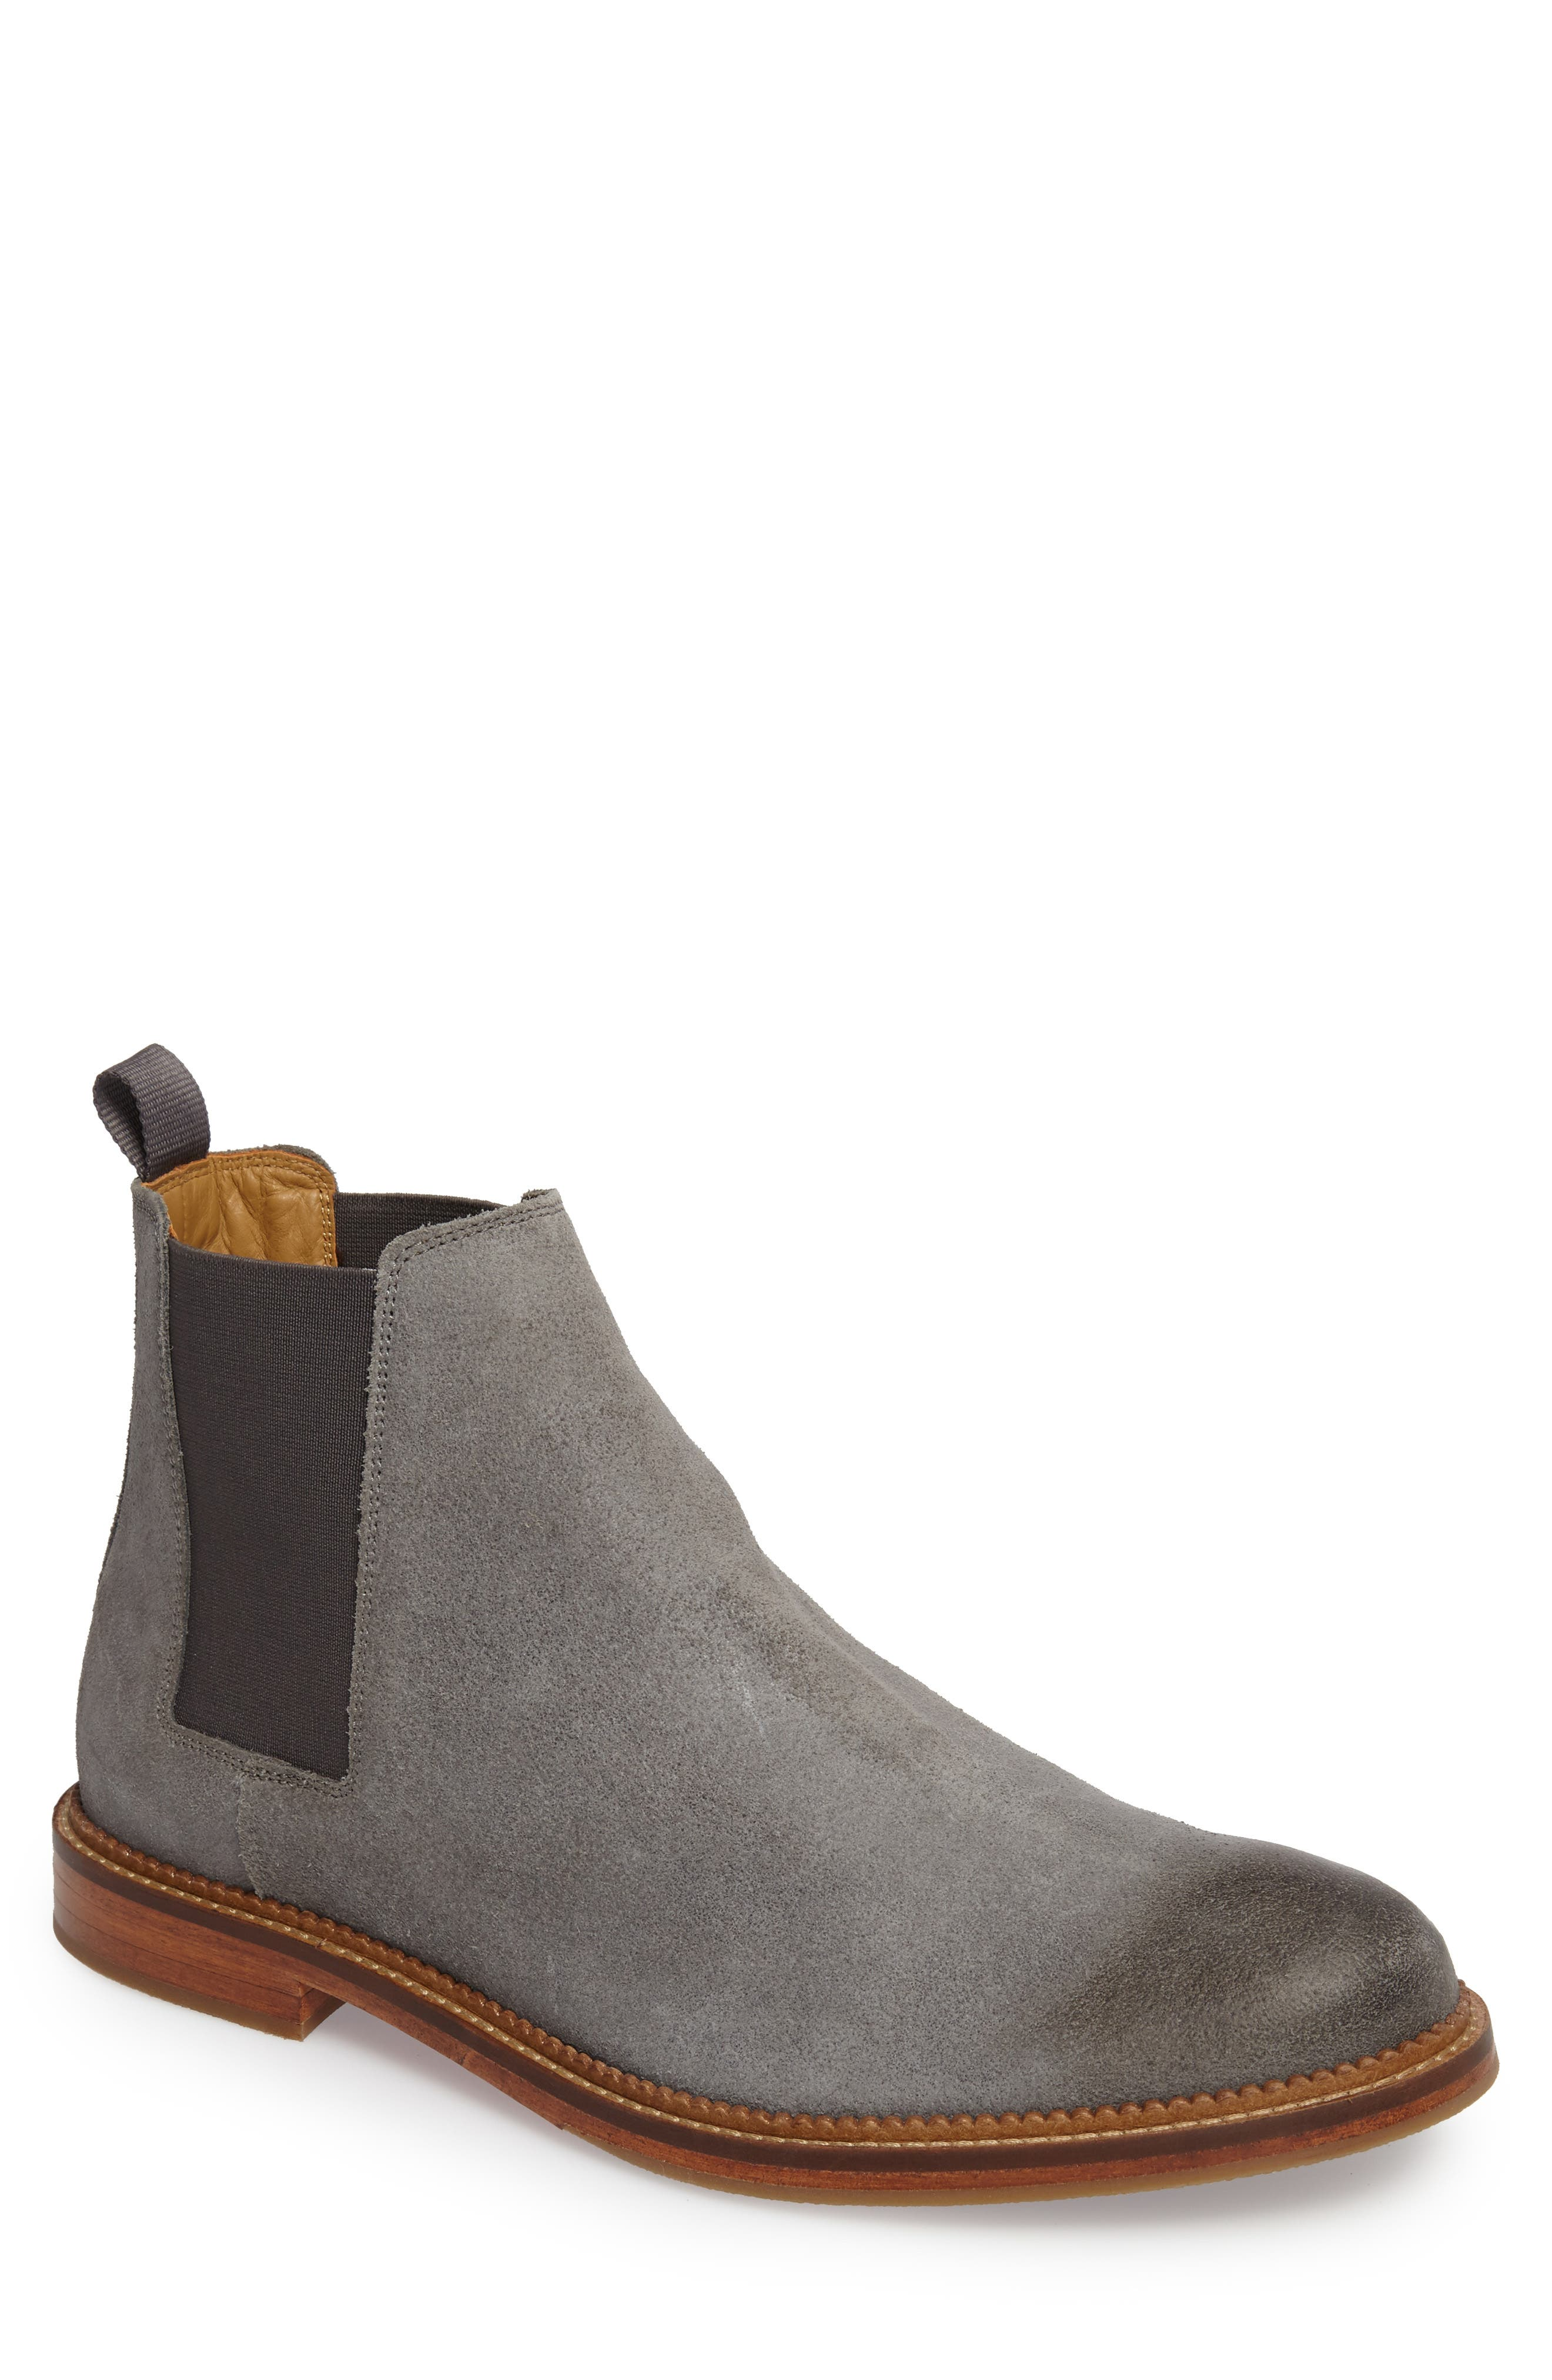 Jamie Chelsea Boot,                         Main,                         color, Magnet Suede